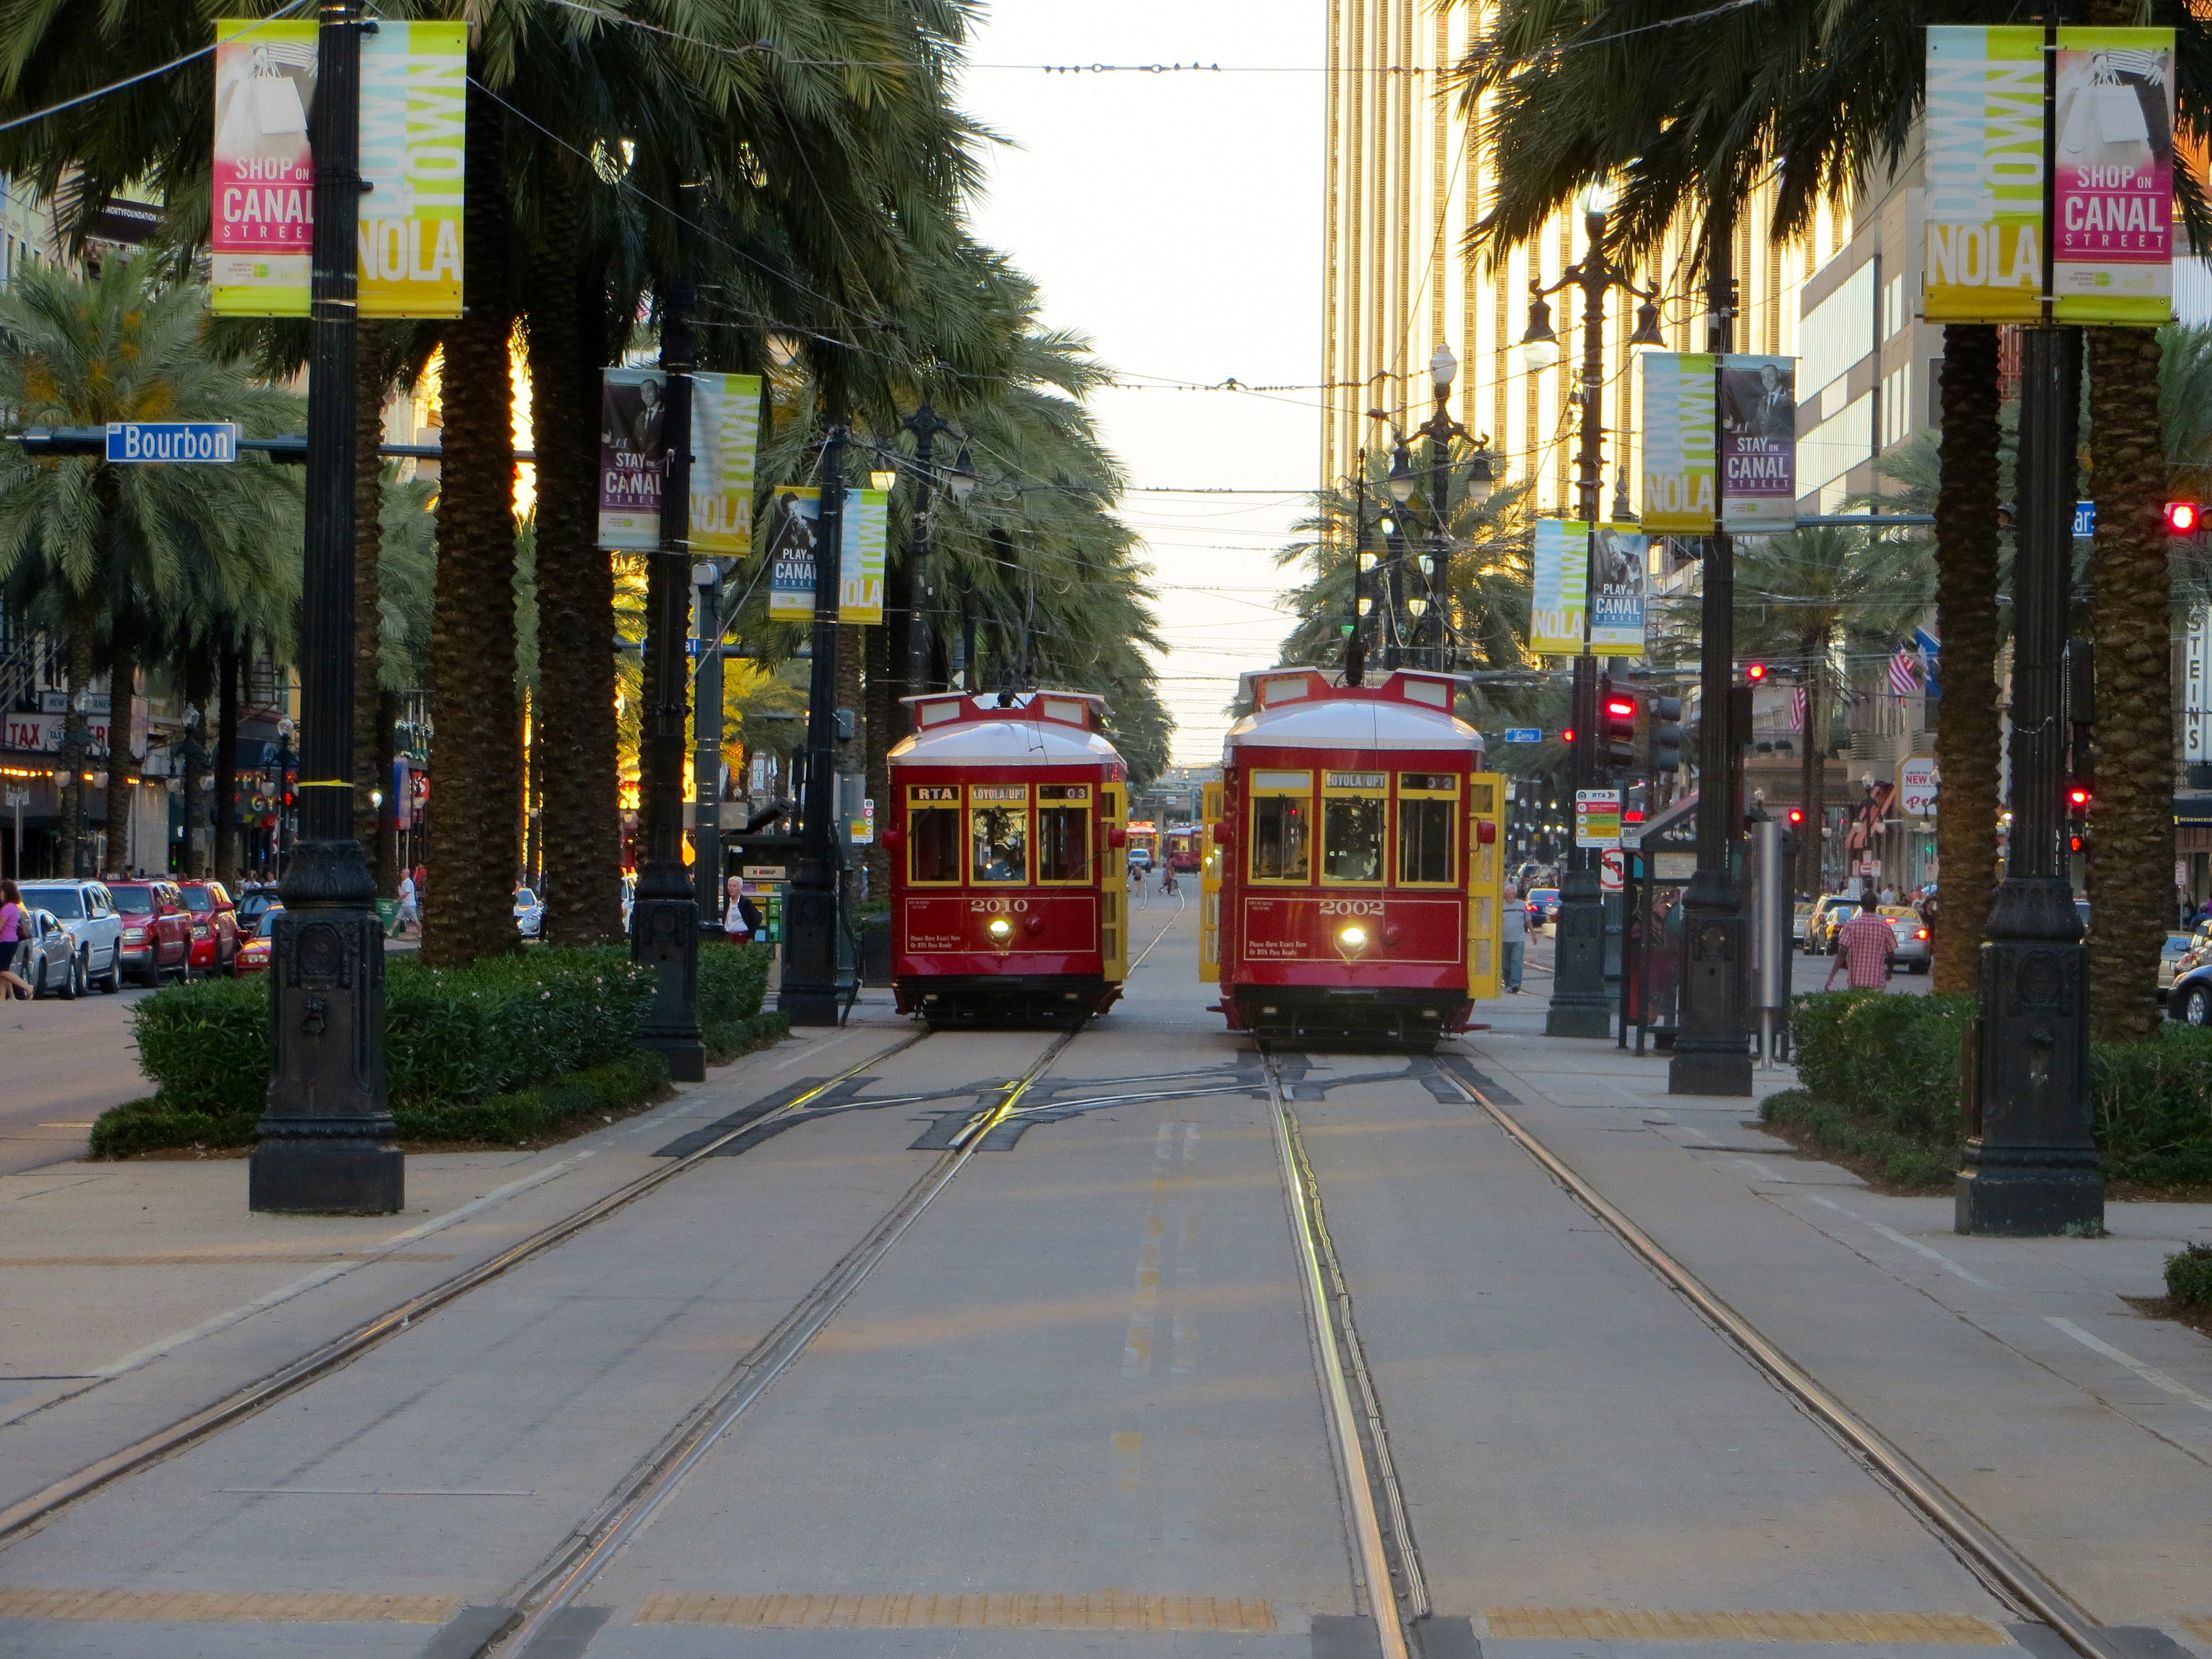 Canal Street, New Orleans  Wiki  Everipedia. Limited Liable Company Water Damage On Iphone. Accounting Assistant Duties Mr Movies Rental. Internet Providers Long Beach Ca. Hyundai Dealers Arizona Www Yahoo Finance Com